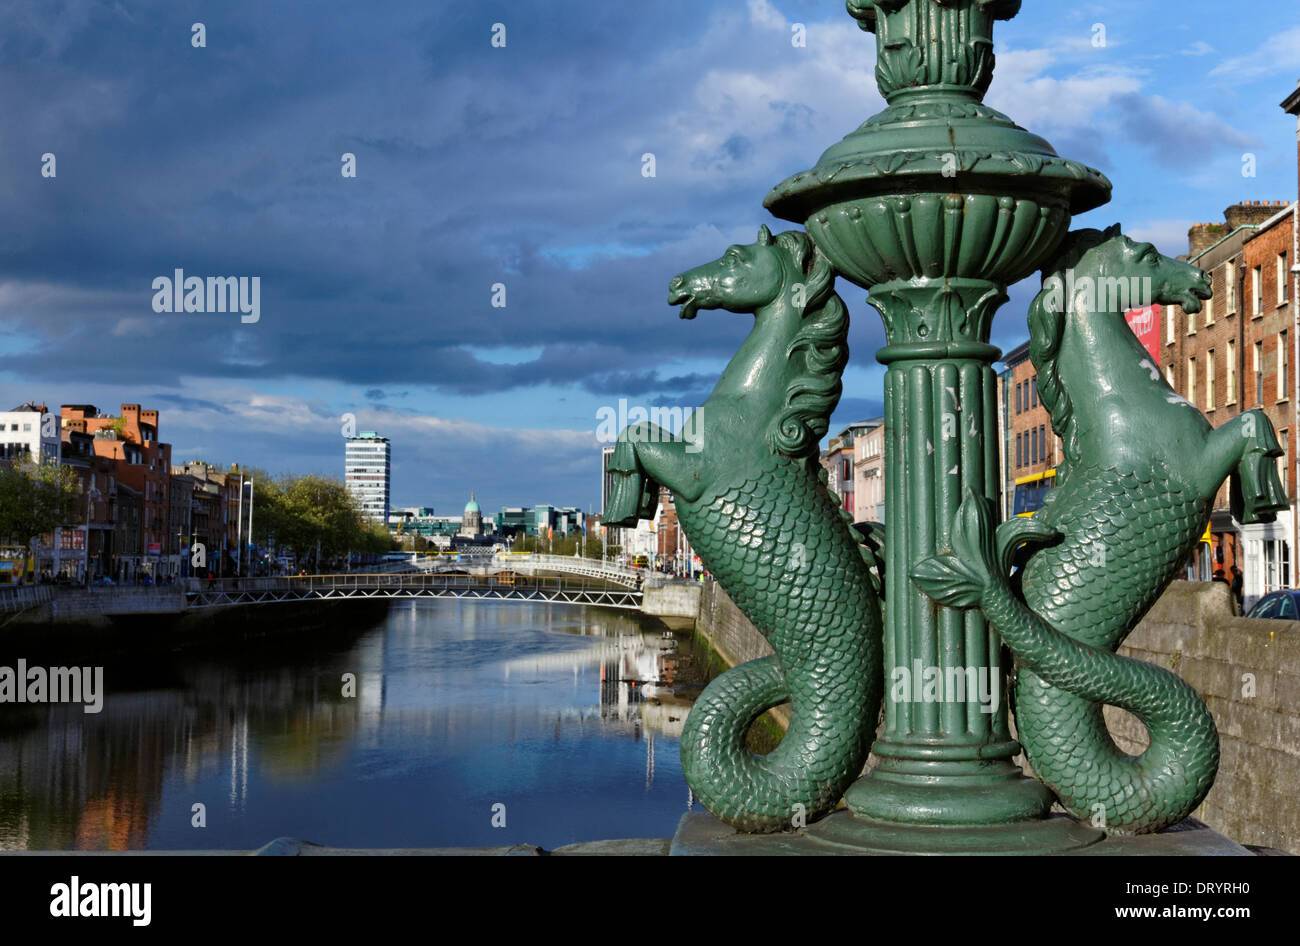 The River Liffey with the Ha'Penny Bridge in the distance, Dublin, Ireland - Stock Image